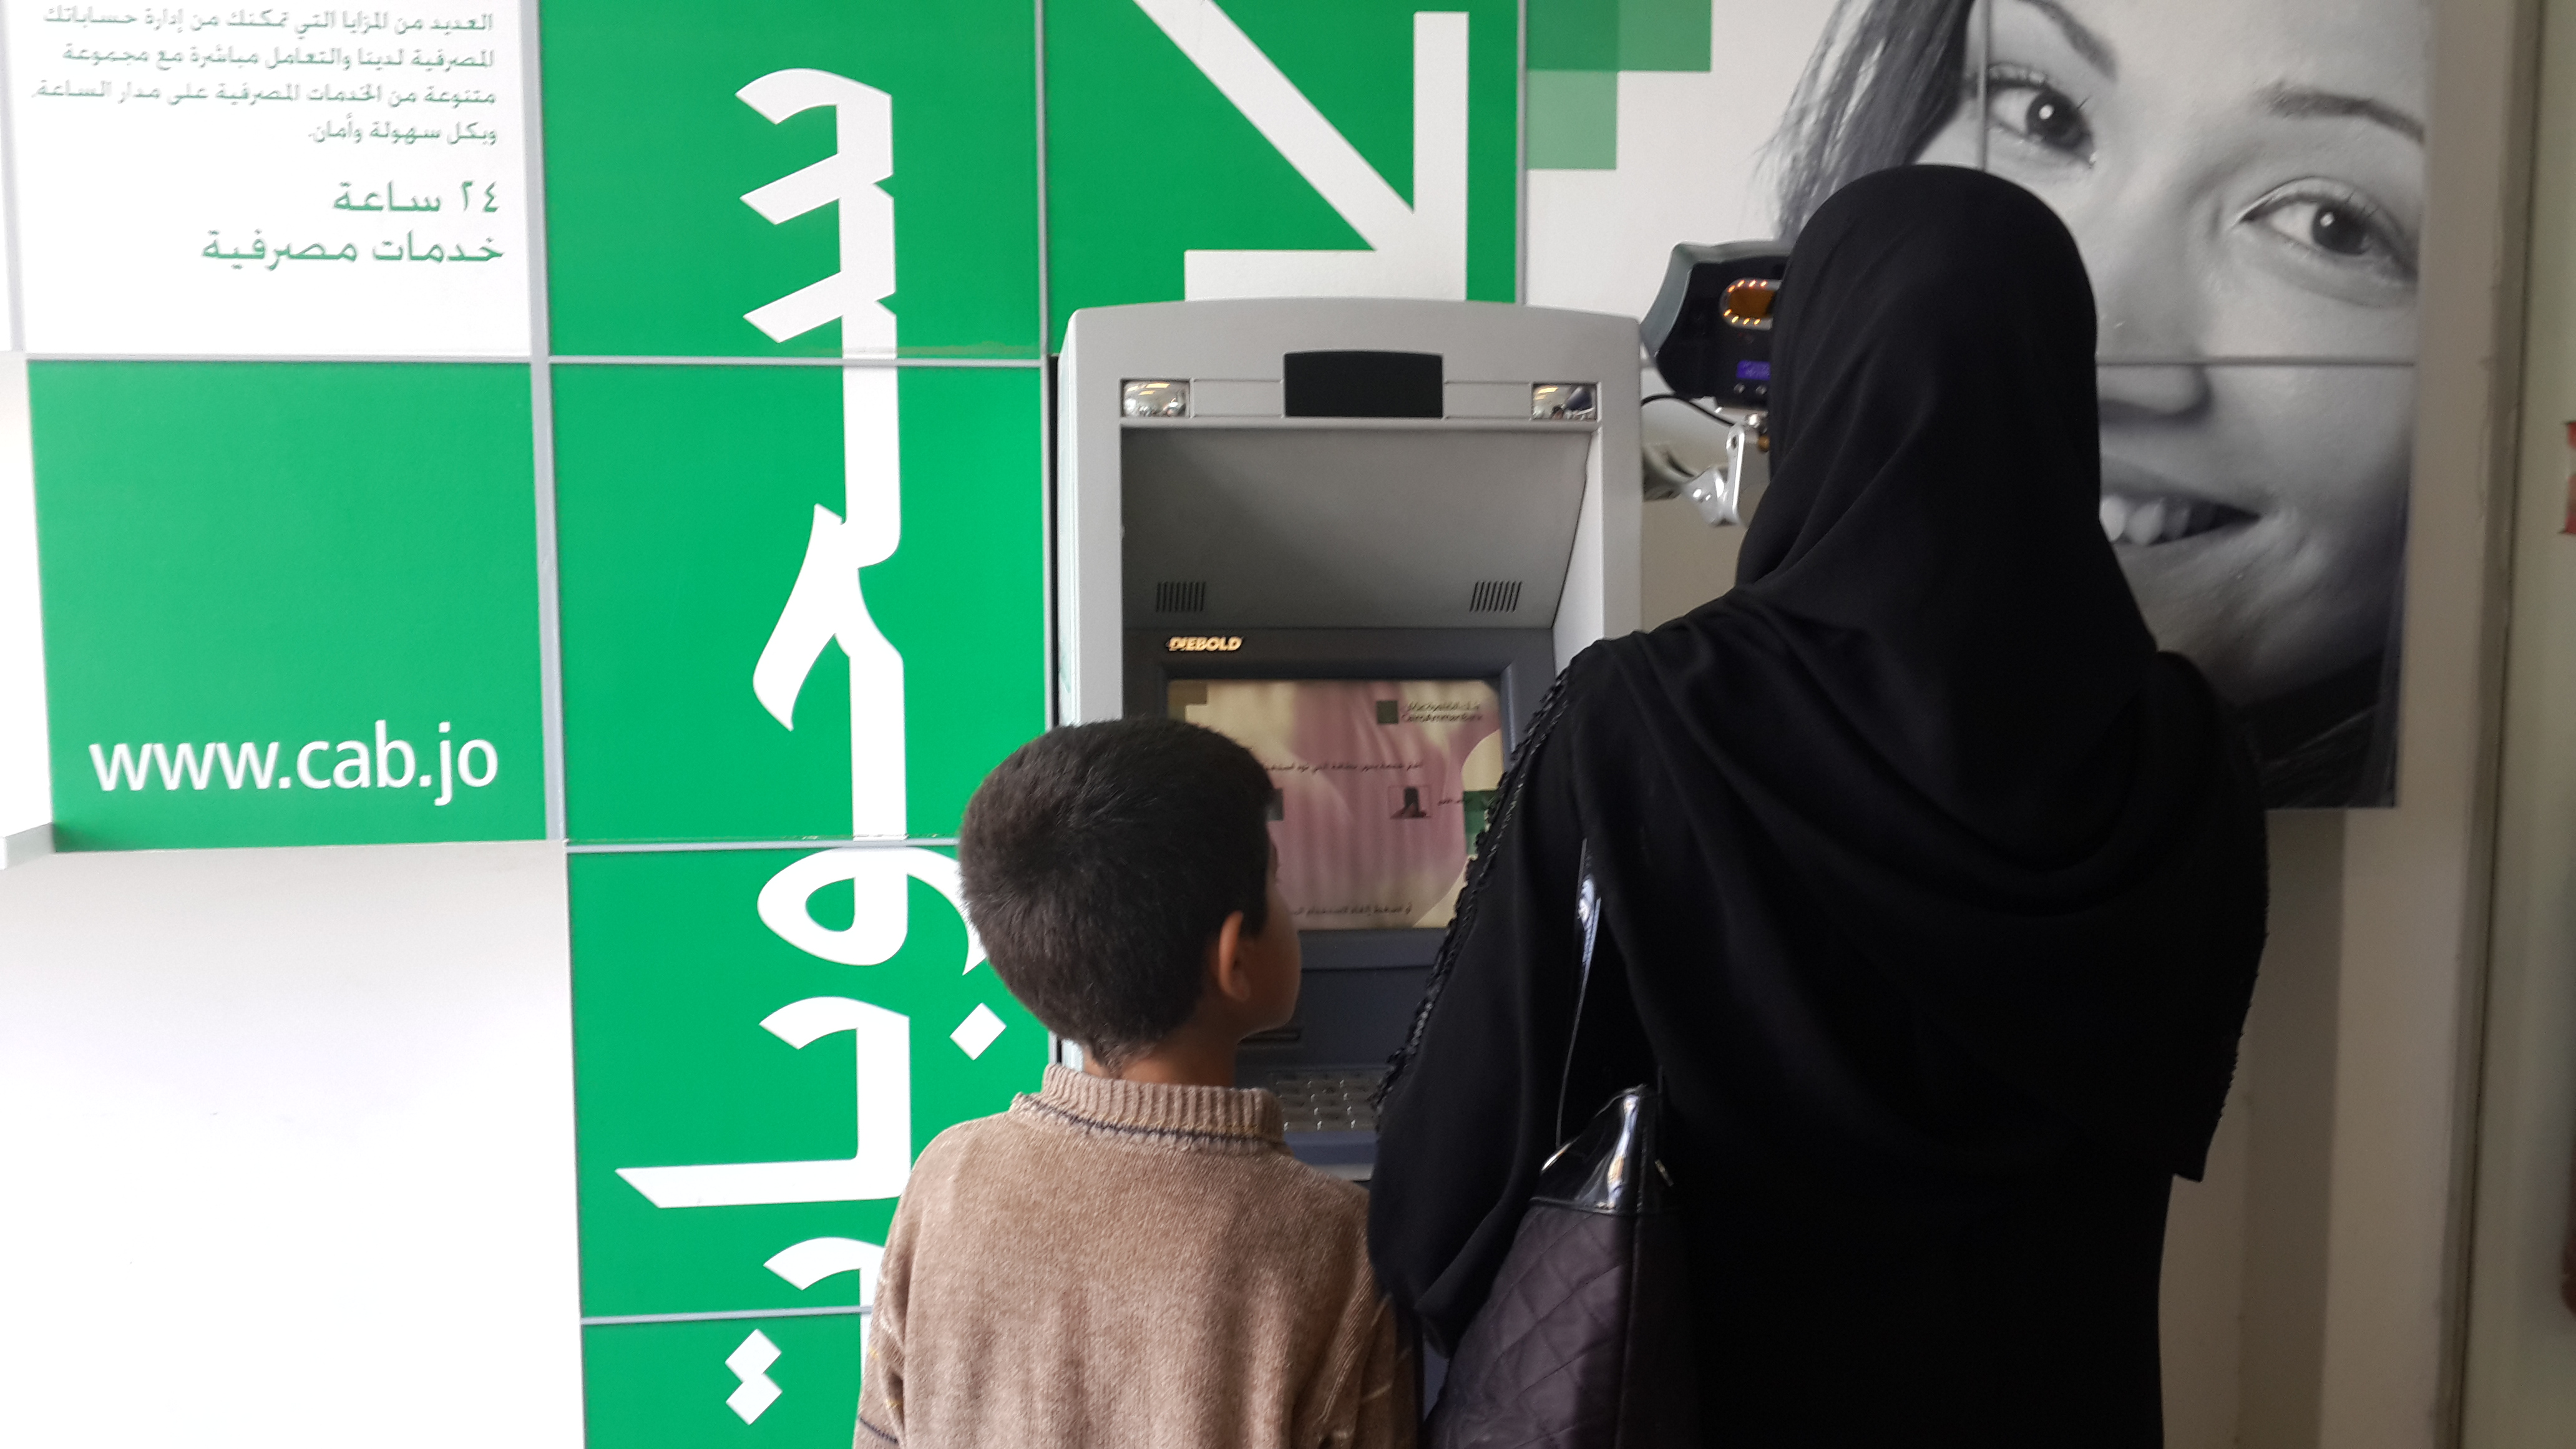 Syrian refugees in Jordan get cash payments from the UN Refugee Agency (UNHCR) through an eye scan. The biometric identification system was introduced in 2013 to reduce fraud and improve aid agencies' ability to track refugees' whereabouts. It is just one